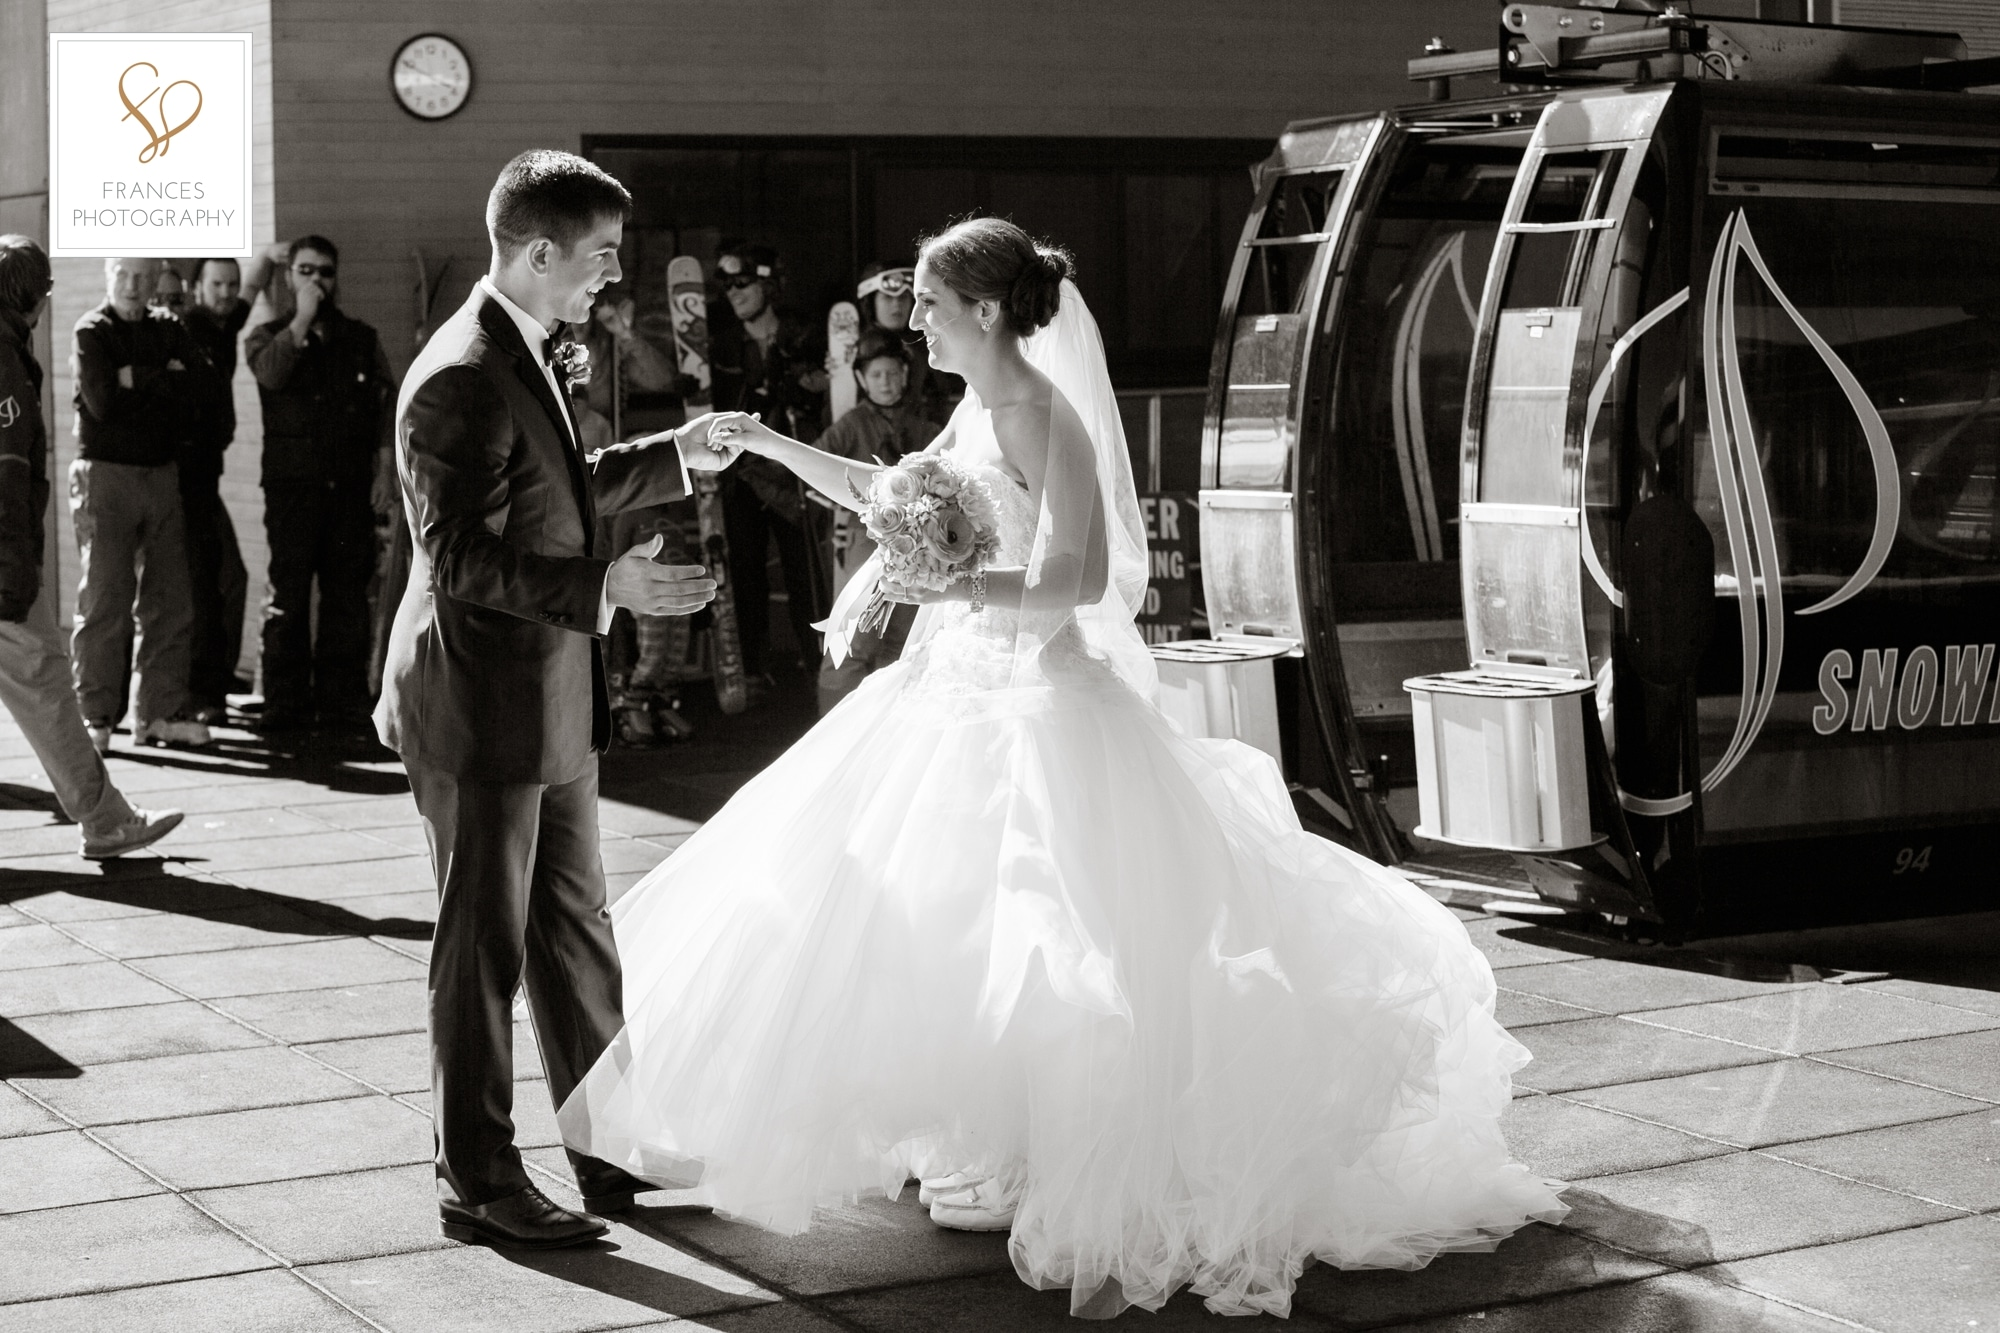 Wedding photo bride groom ski lift